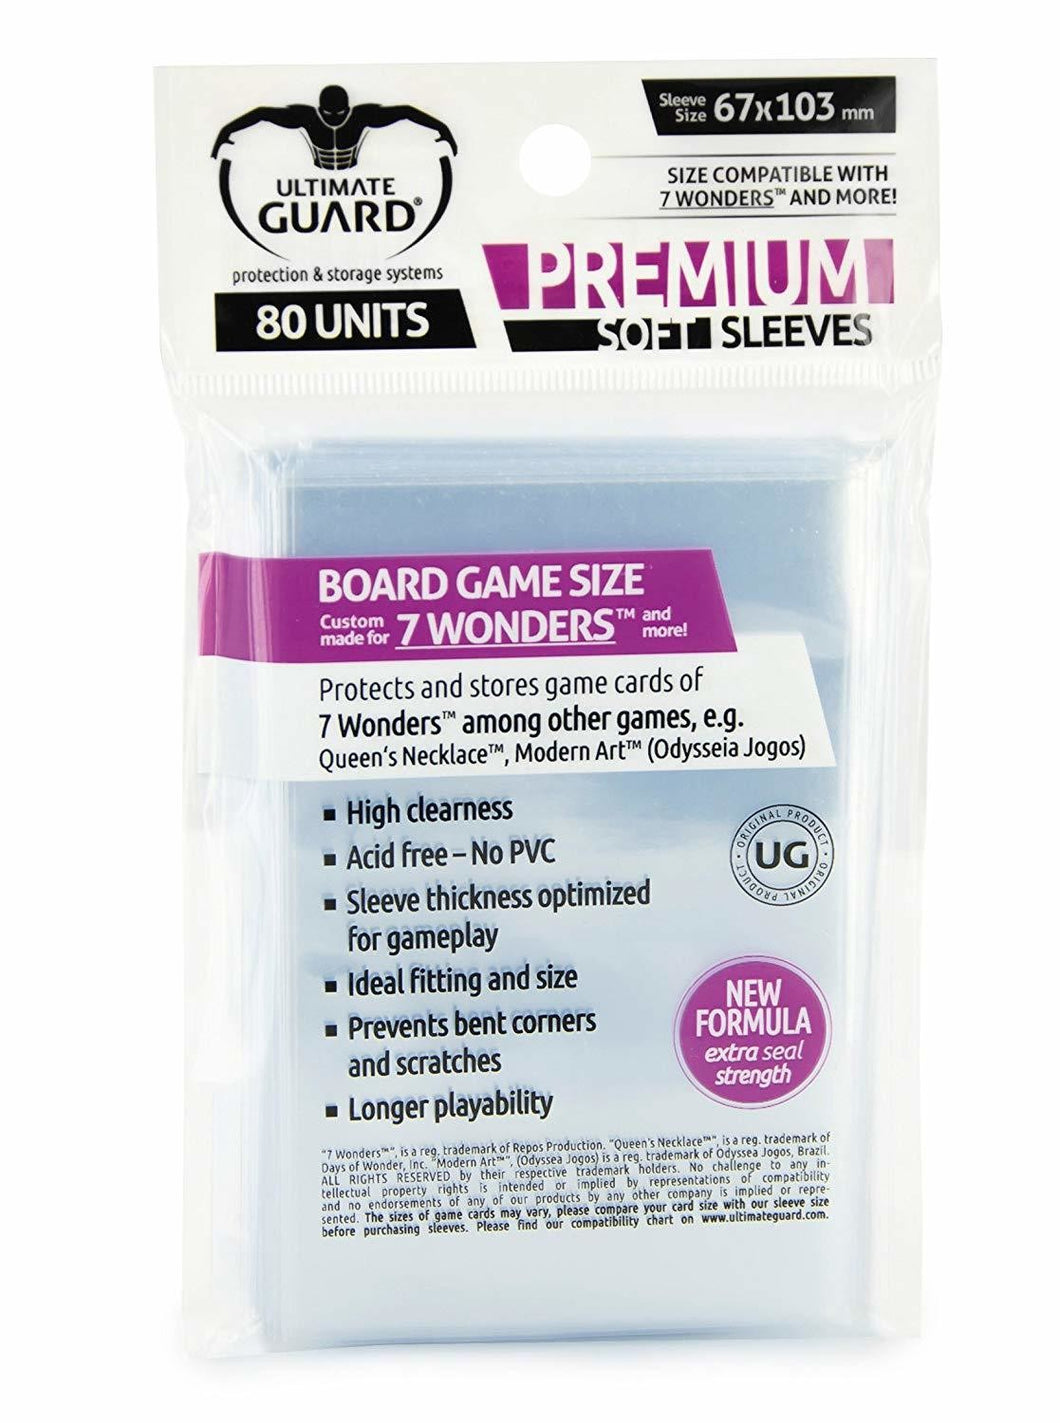 Ultimate Guard Premium Soft Sleeves 67x103